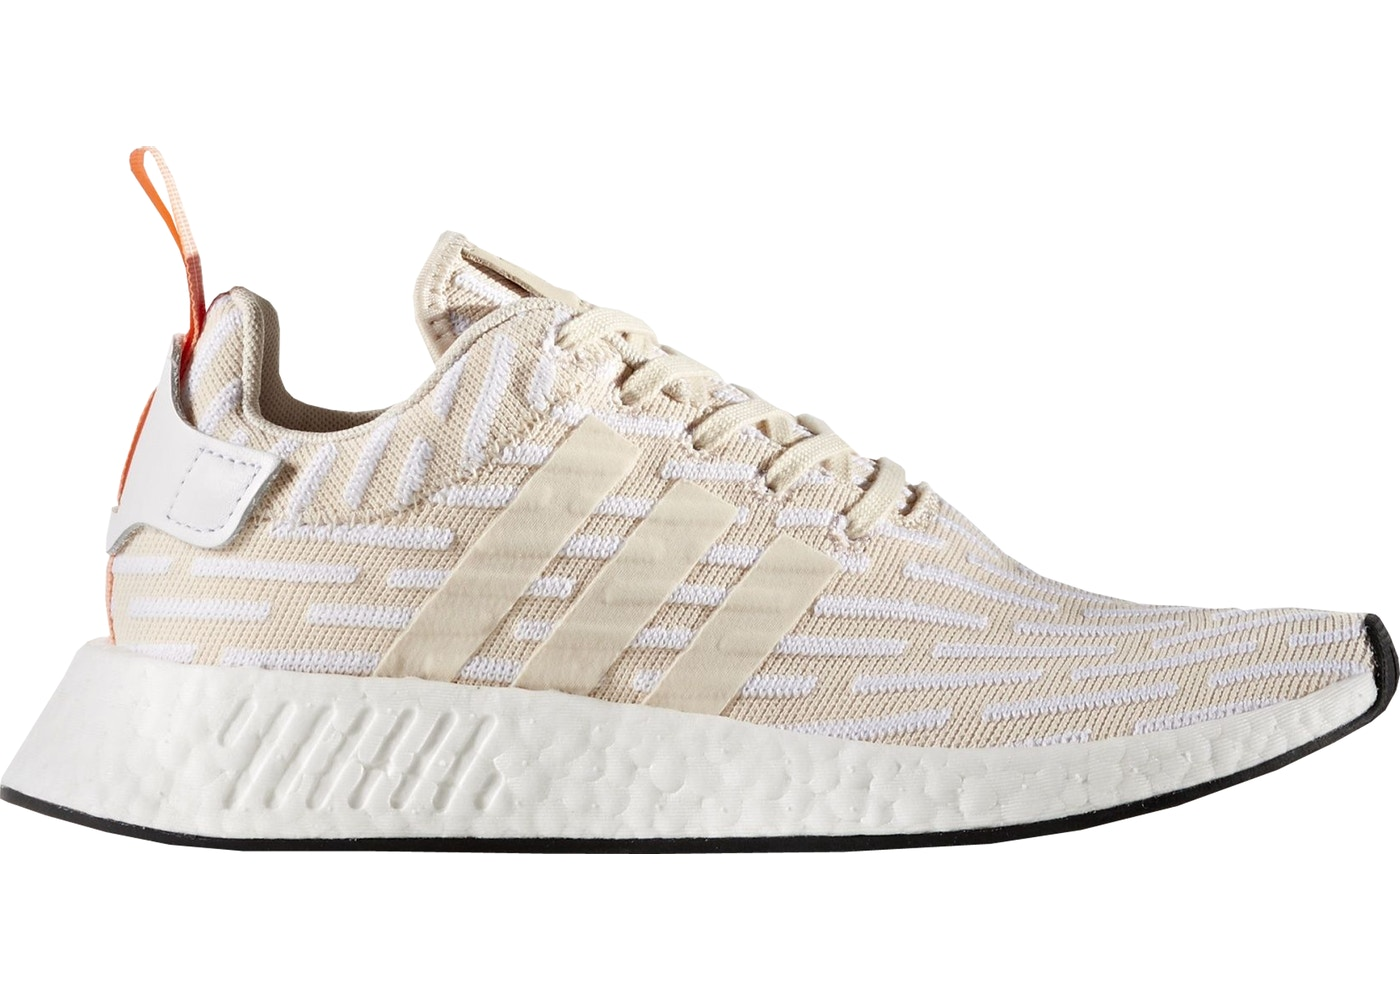 c32e0c100 Buy adidas NMD R2 Shoes   Deadstock Sneakers